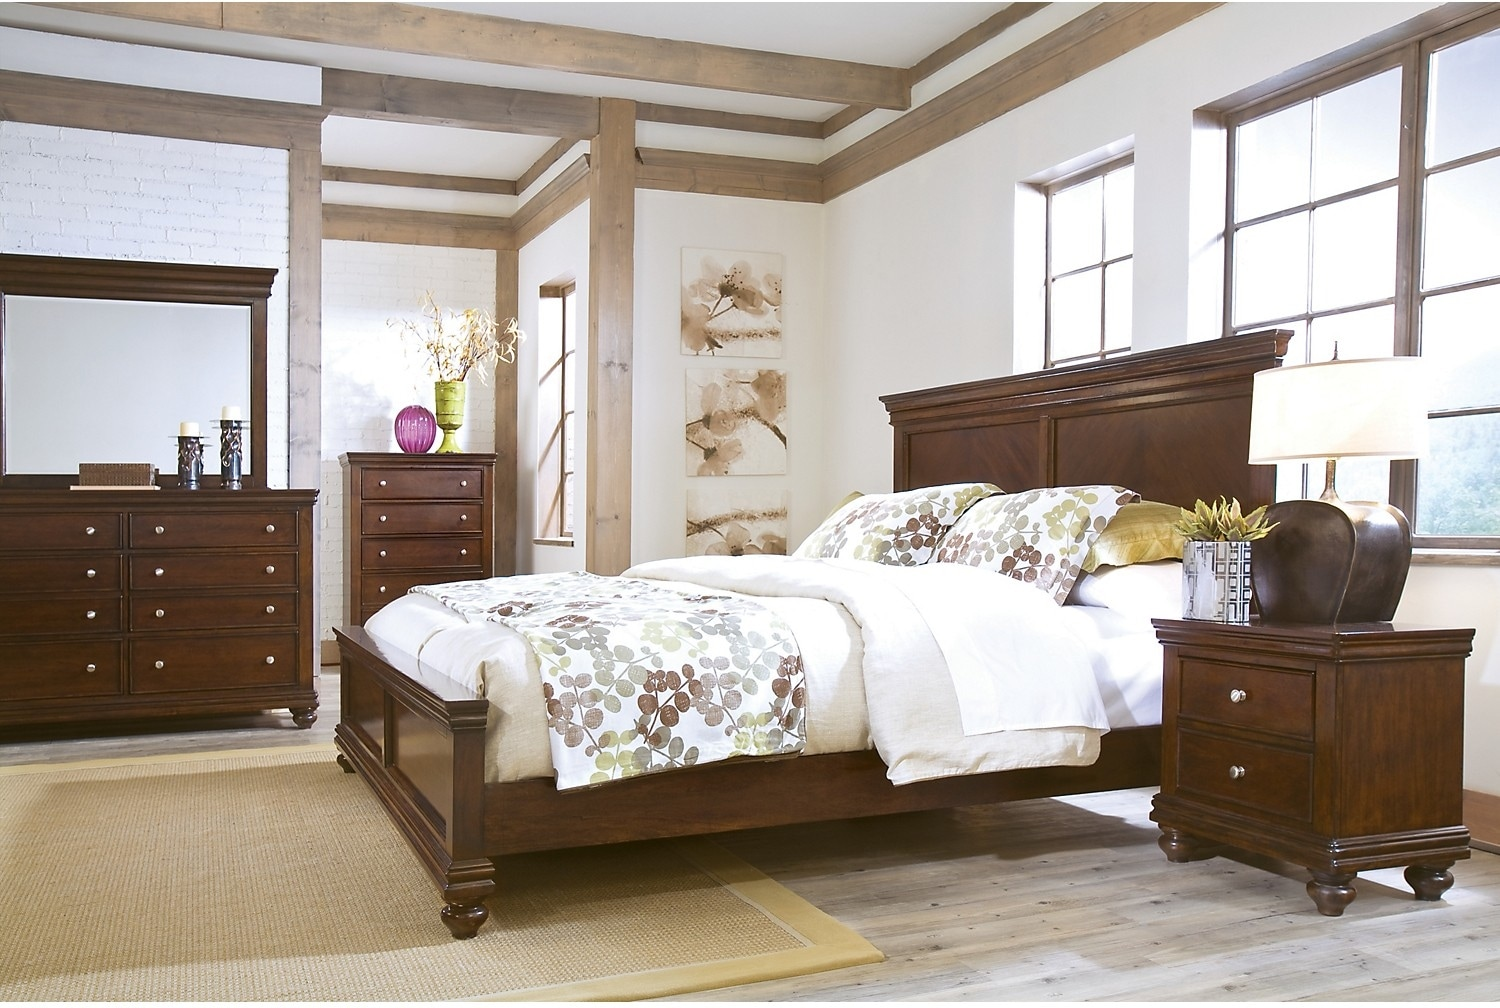 Bridgeport 6 piece queen bedroom set the brick - Bed room furniture ...